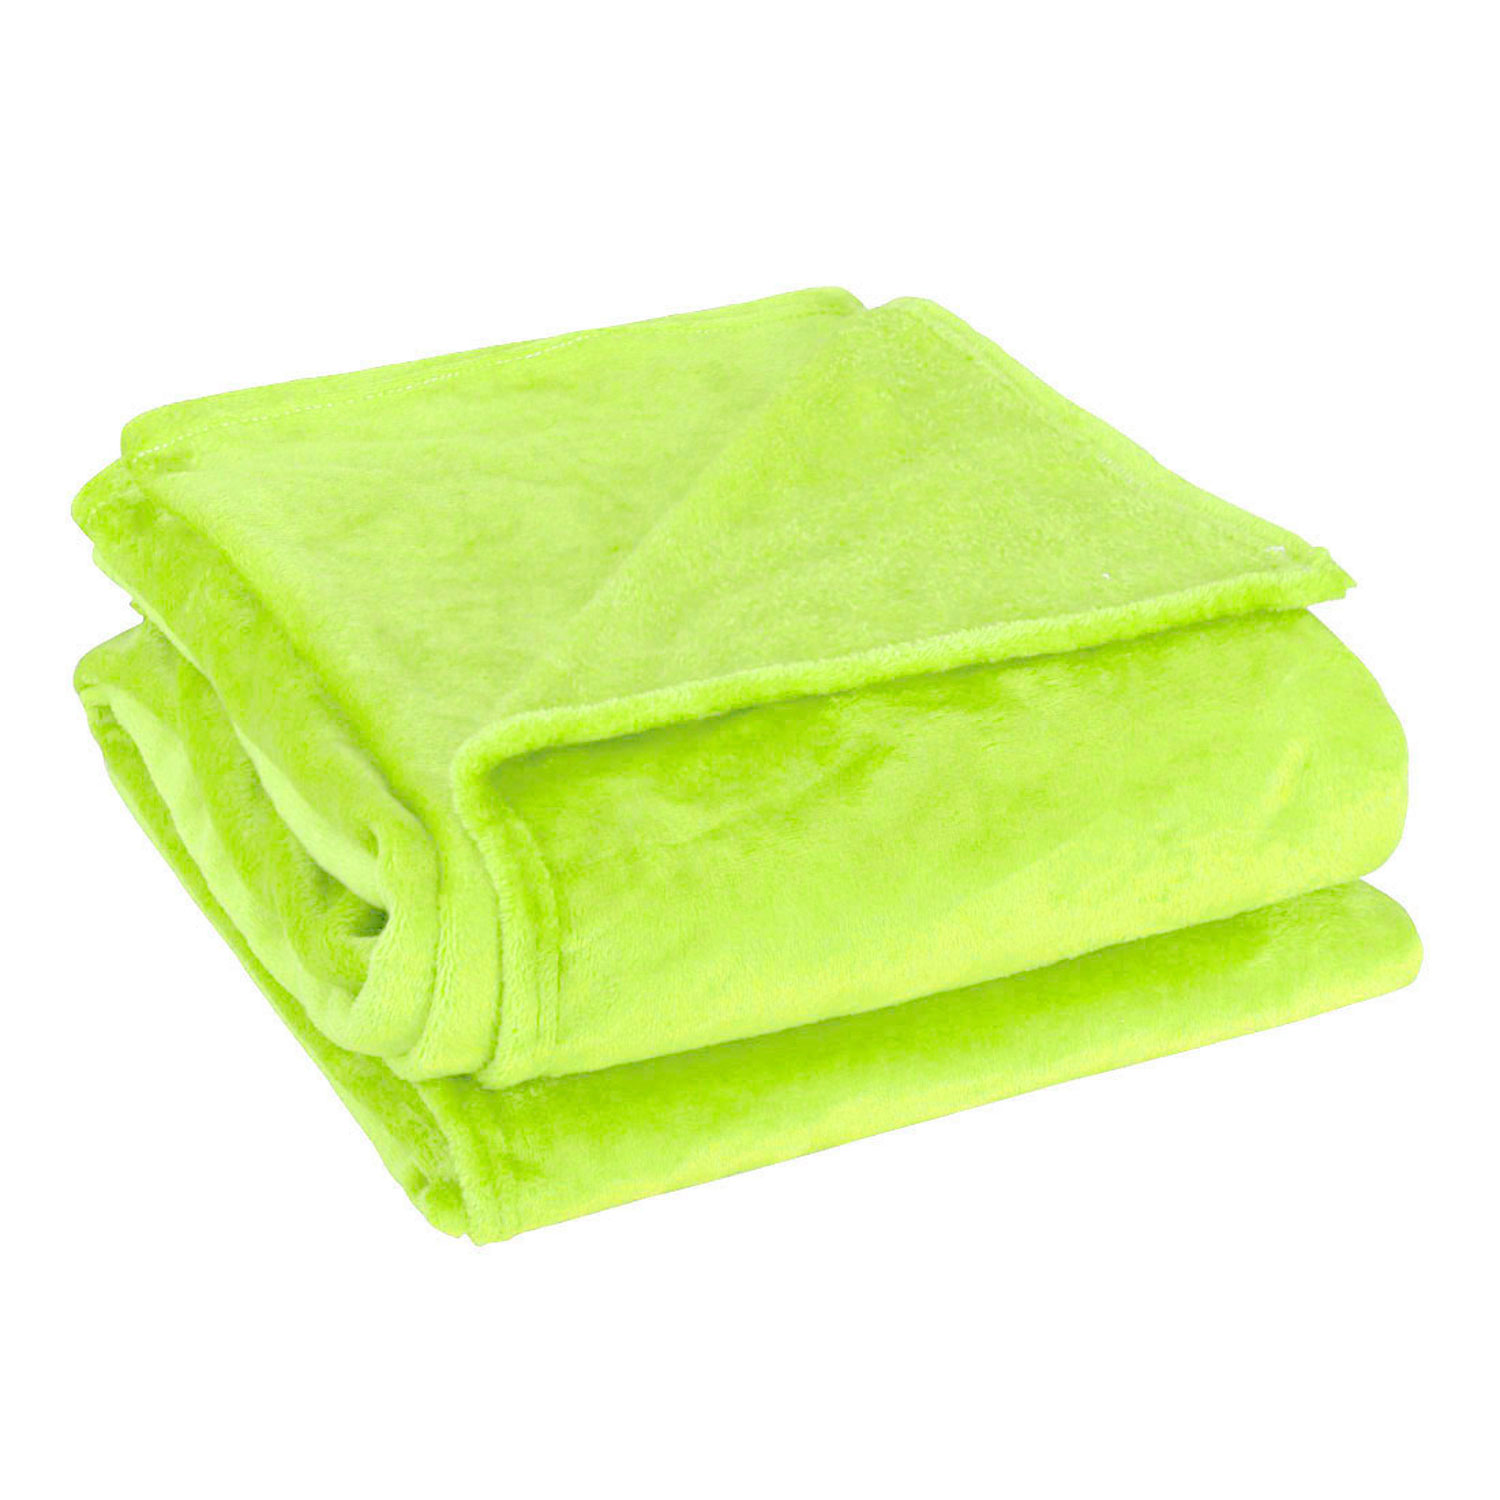 1.5 x 2M Twin Size Home Bedroom Bed Sofa Warm Plush Couch Throws Blanket Soft Lime Green